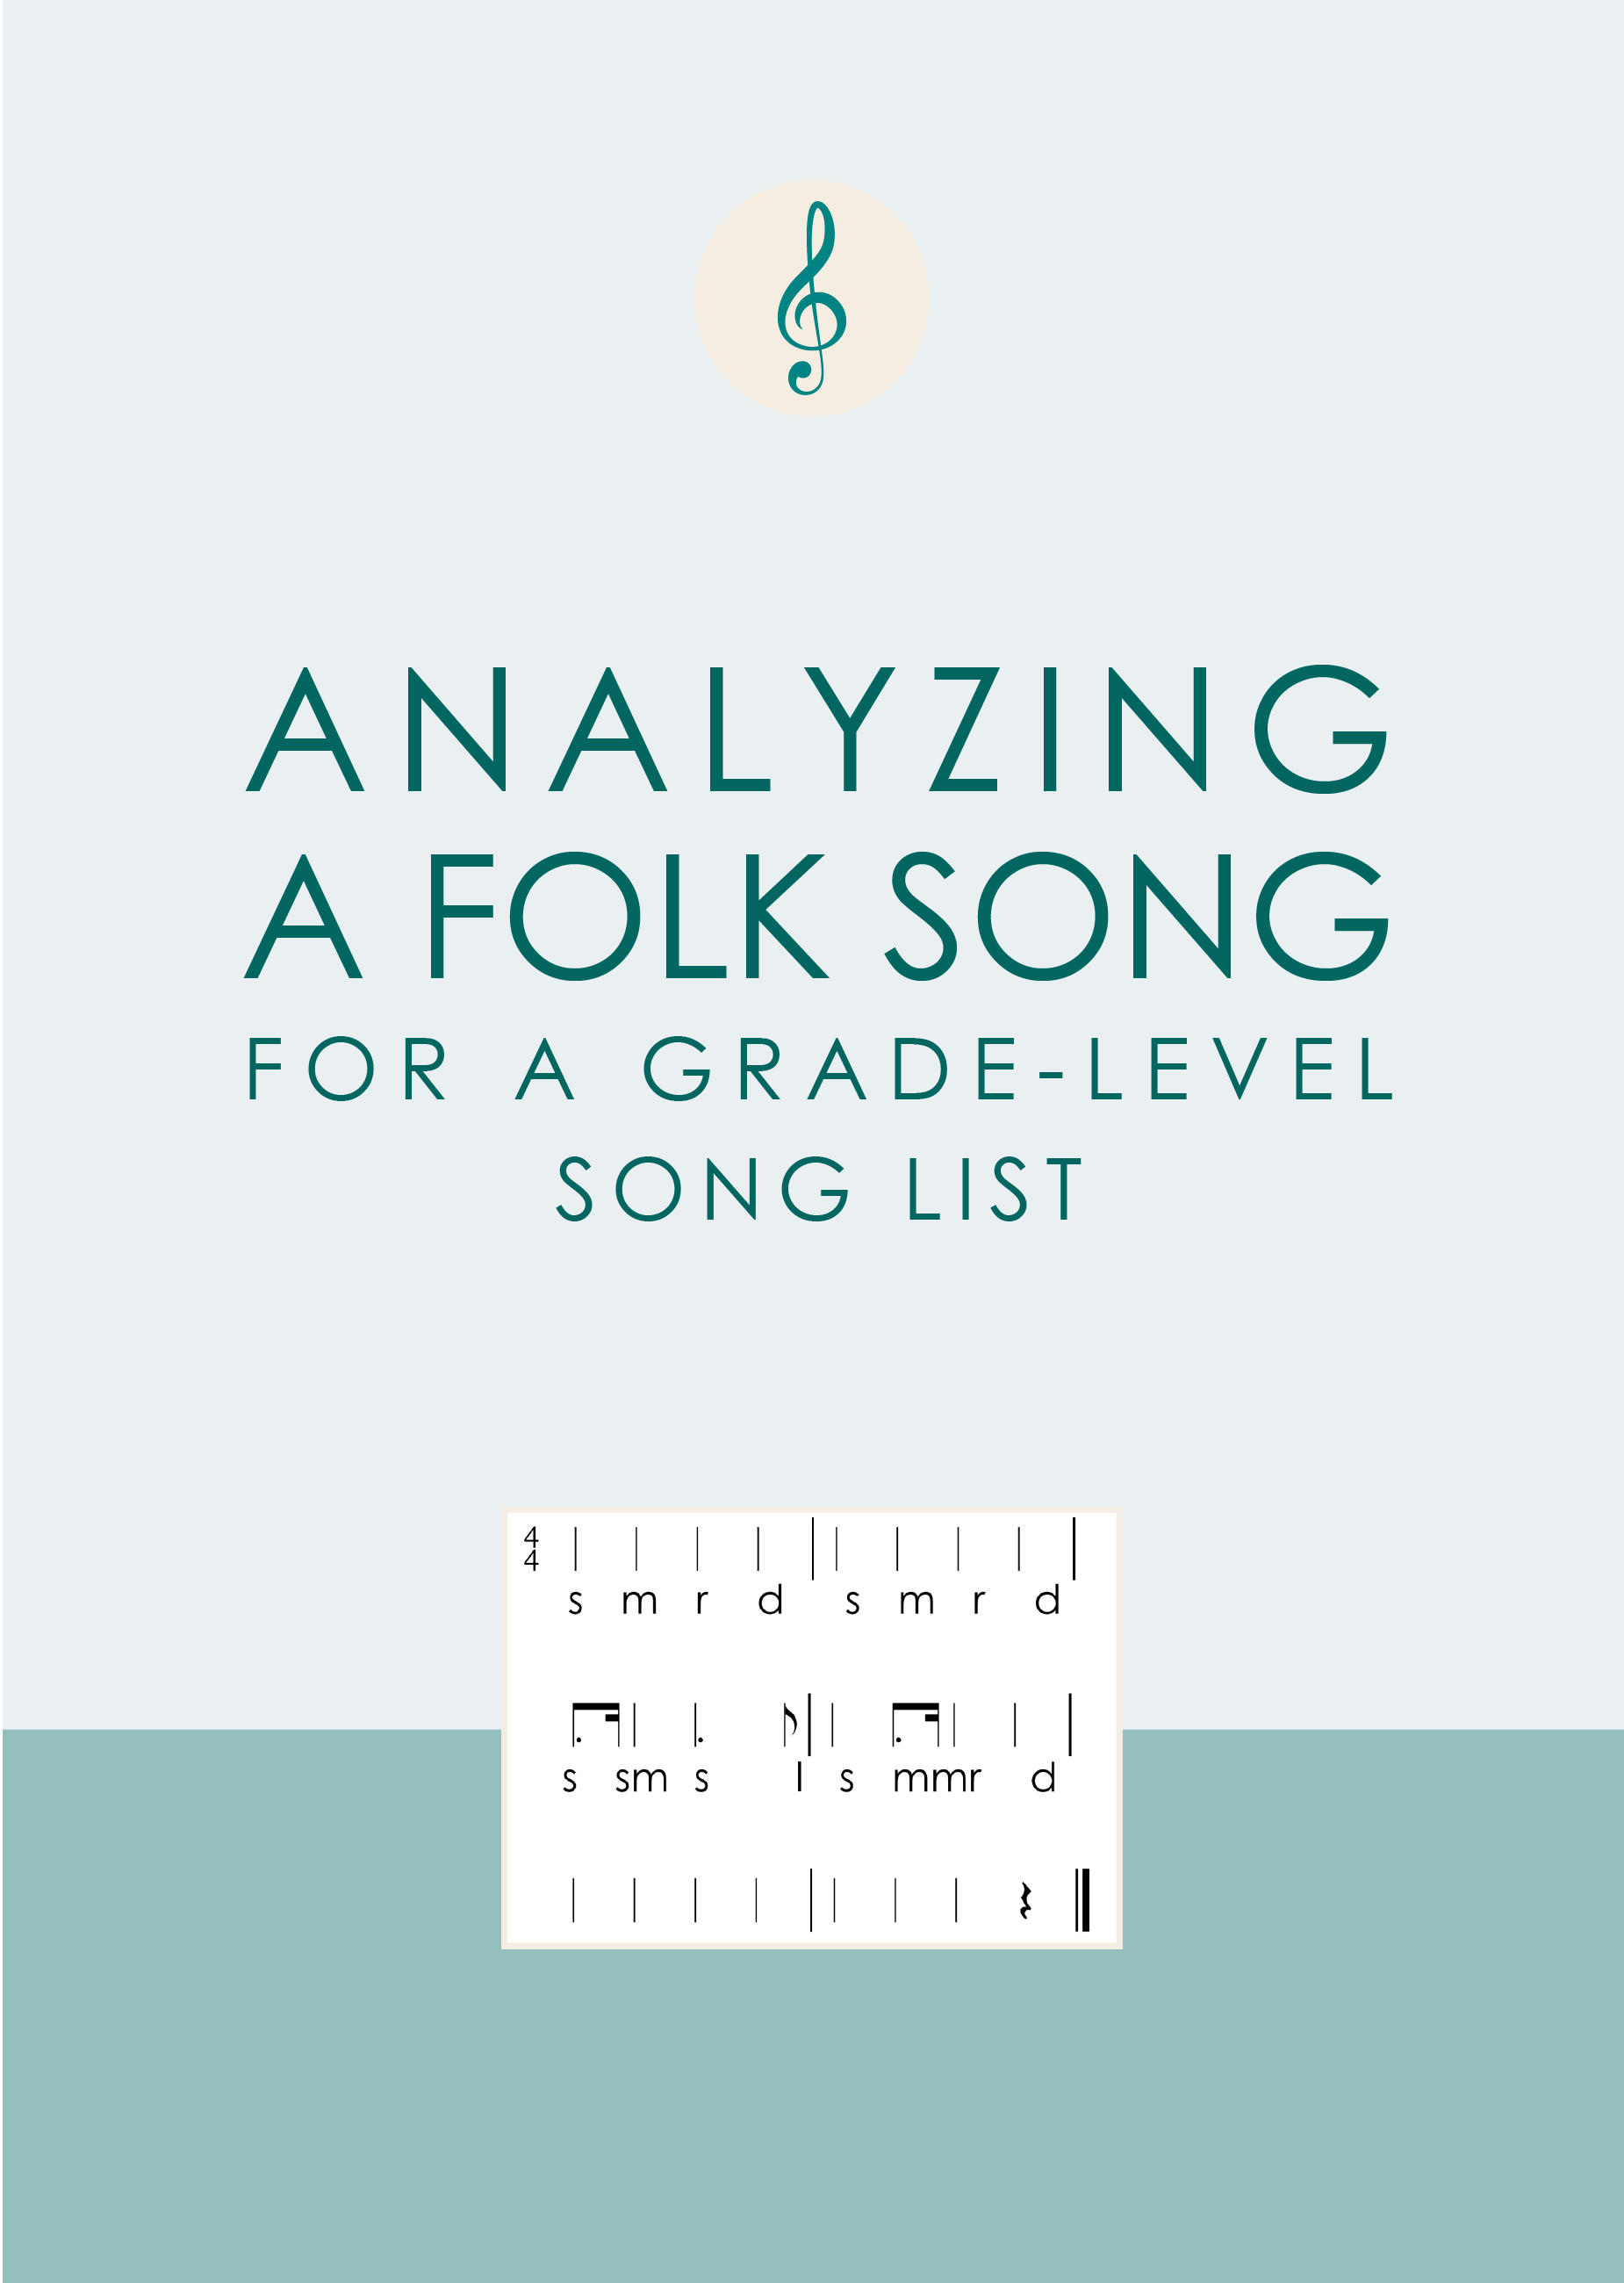 Analyzing a Folk Song for a Grade-Level Song Listldpi.png